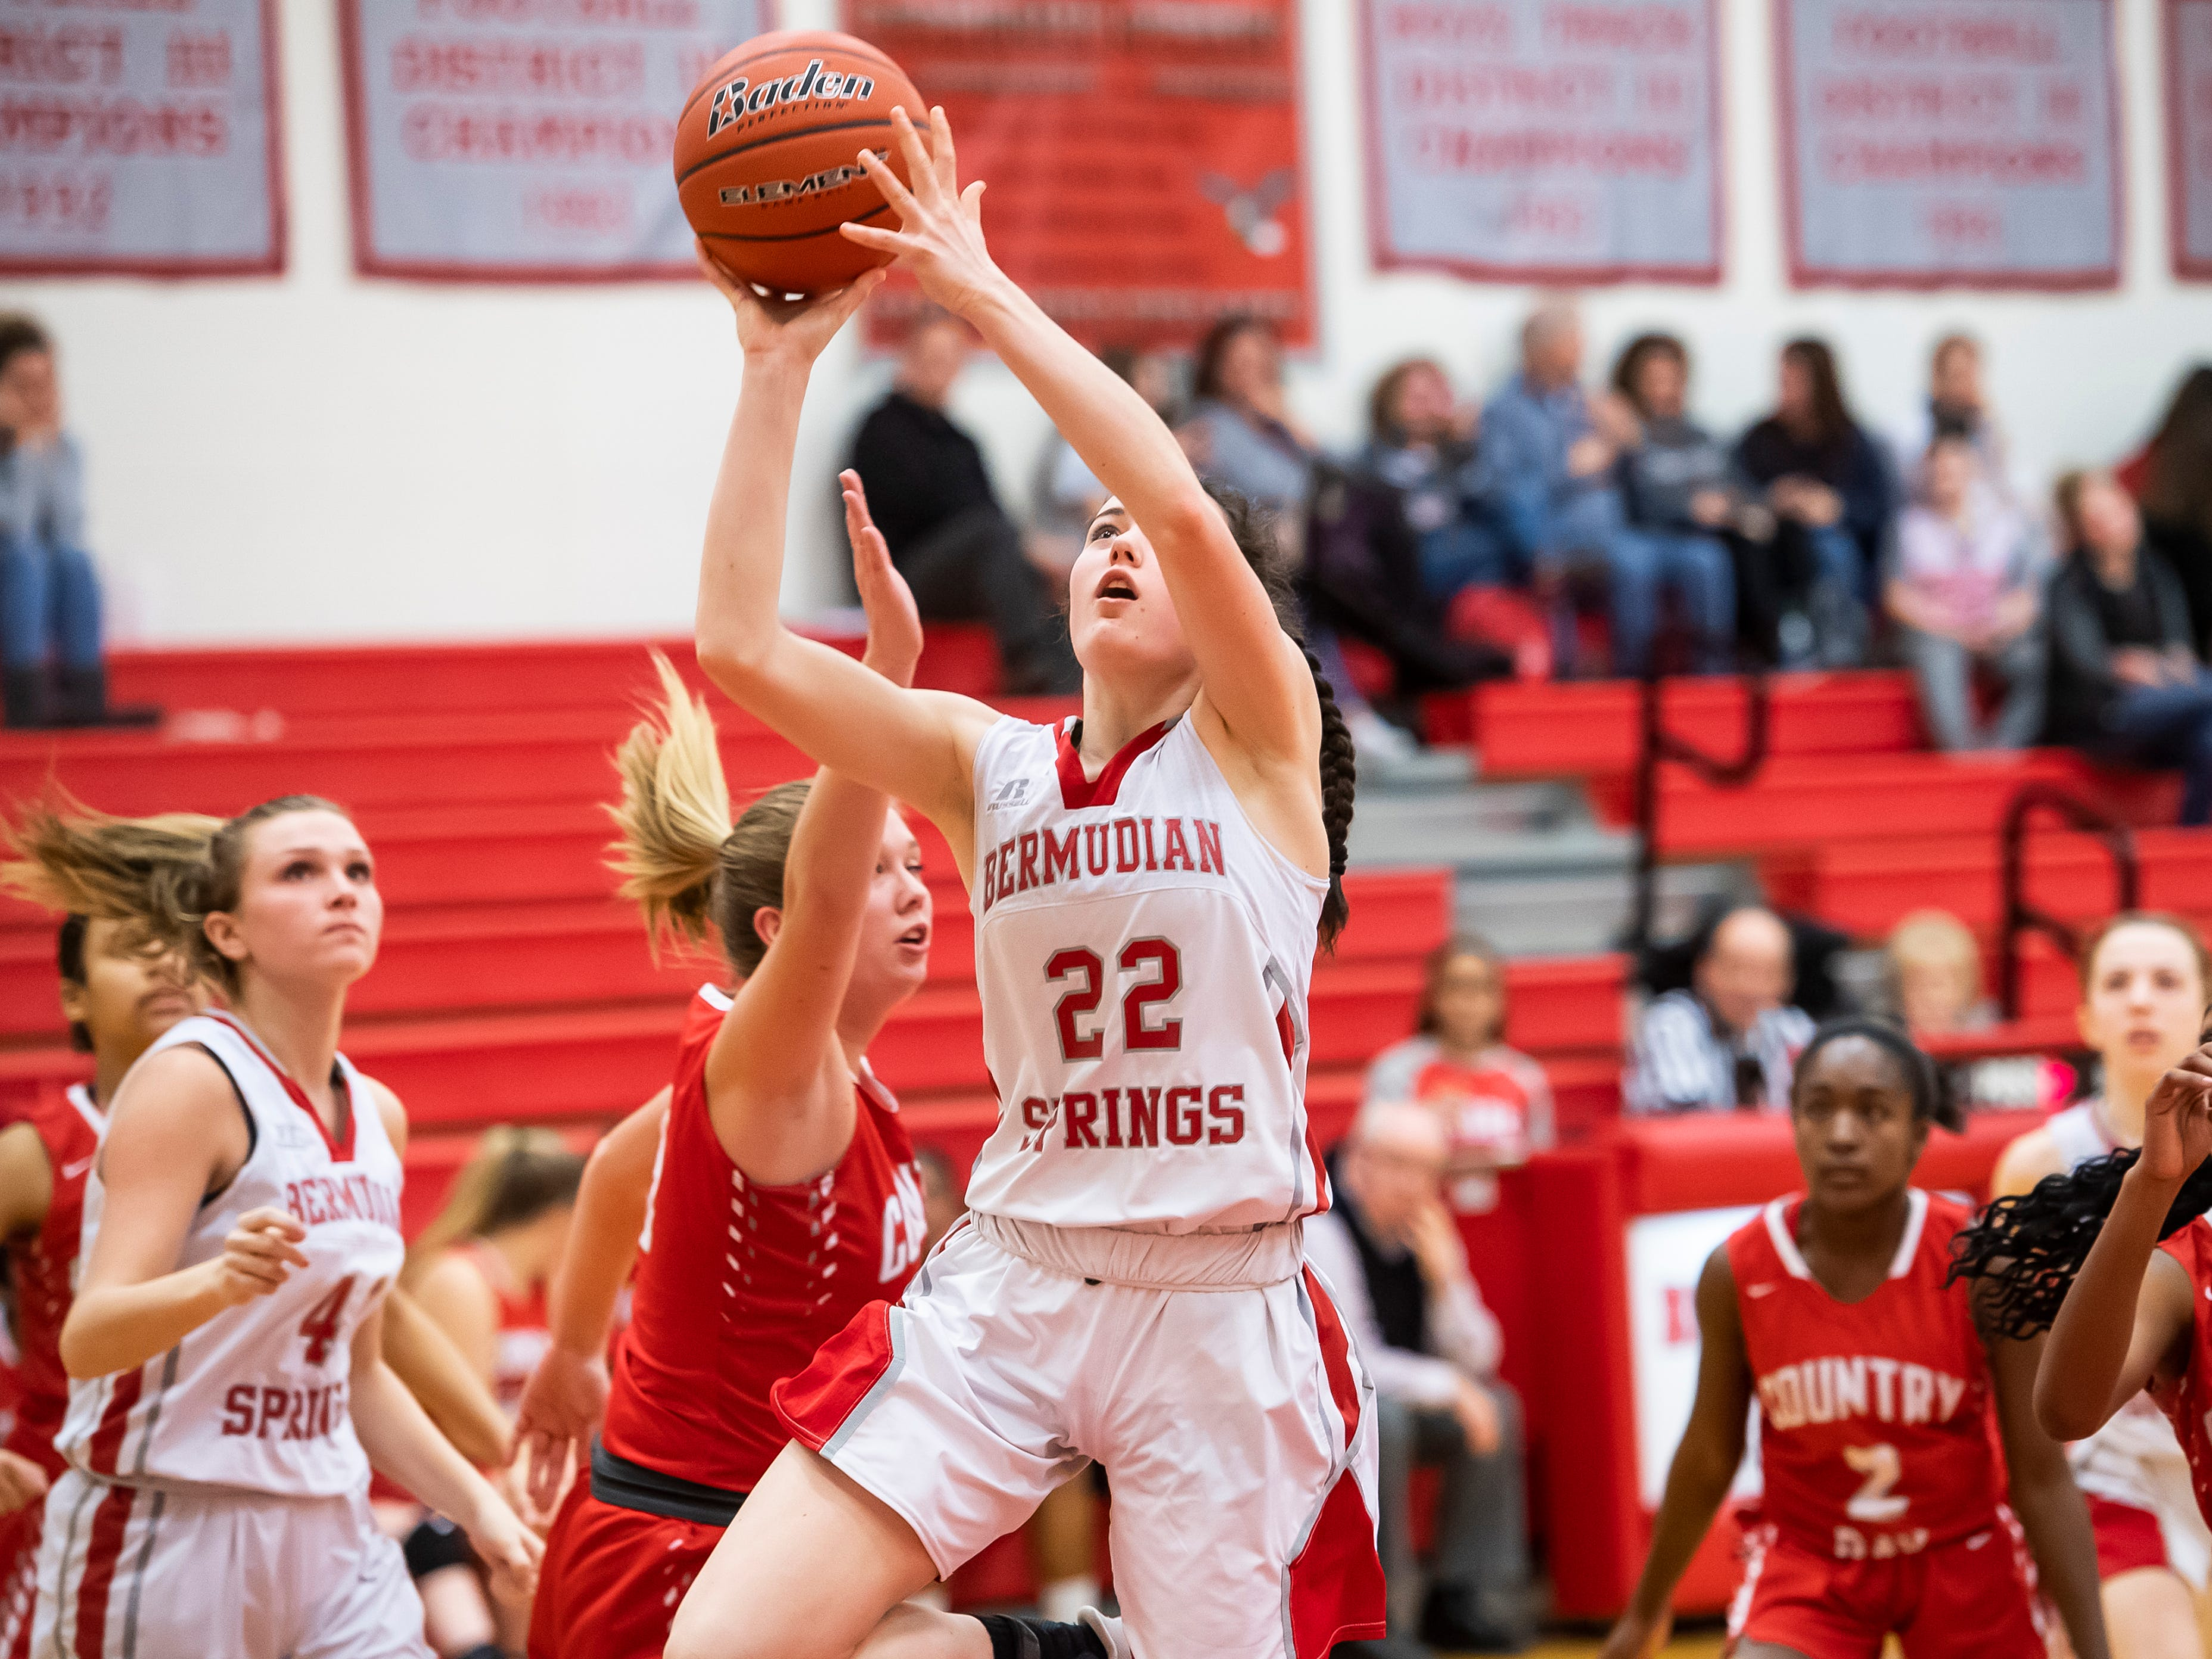 Bermudian Springs' Lilian Peters scores on a layup during play against York Country Day School at Bermudian Springs High School on Monday, January 14, 2019. The Eagles won 59-20.